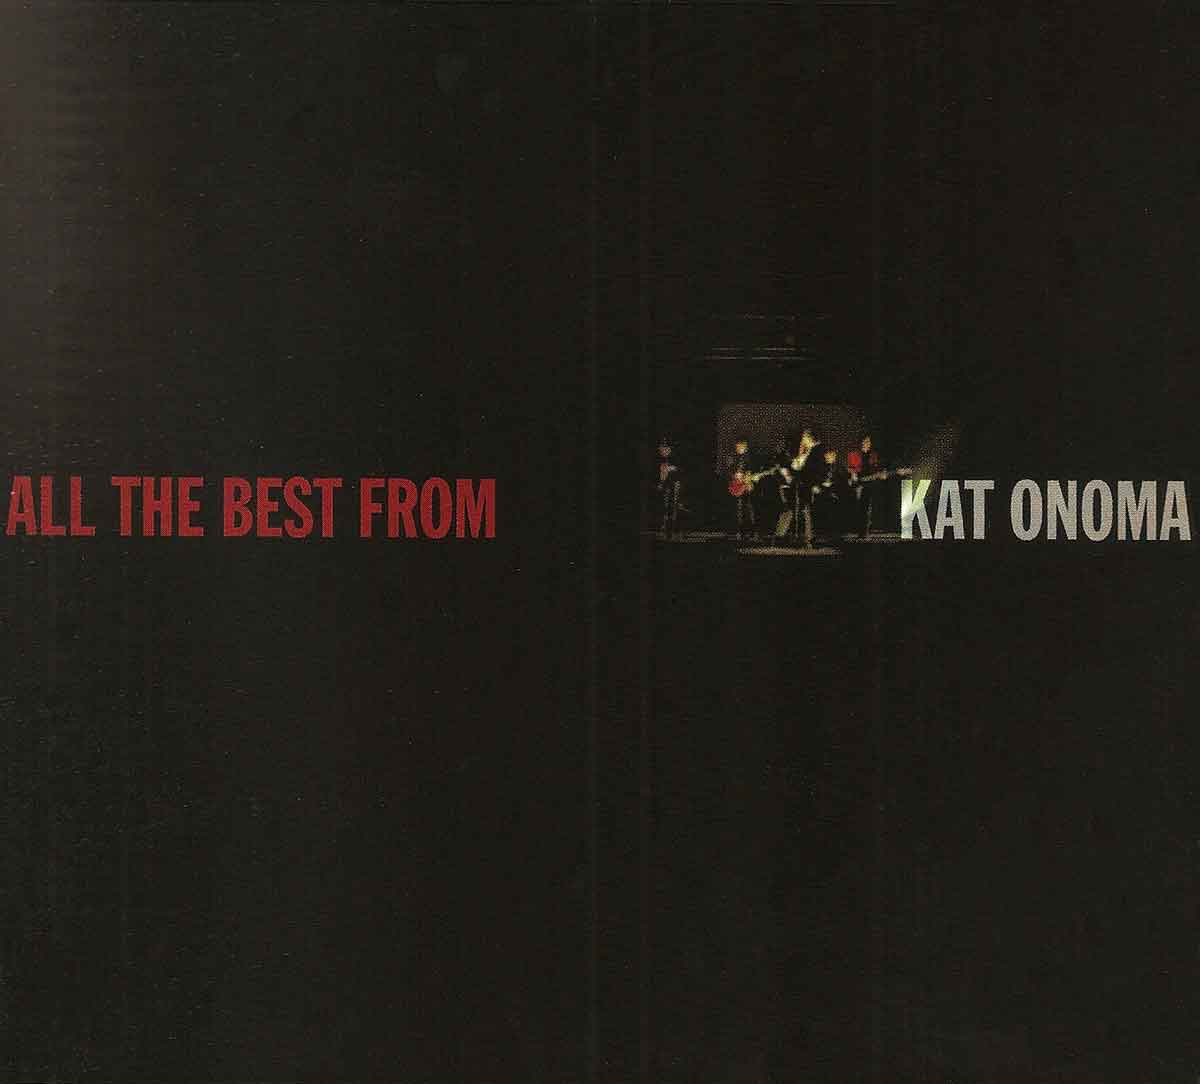 02-all the best from - kat onoma